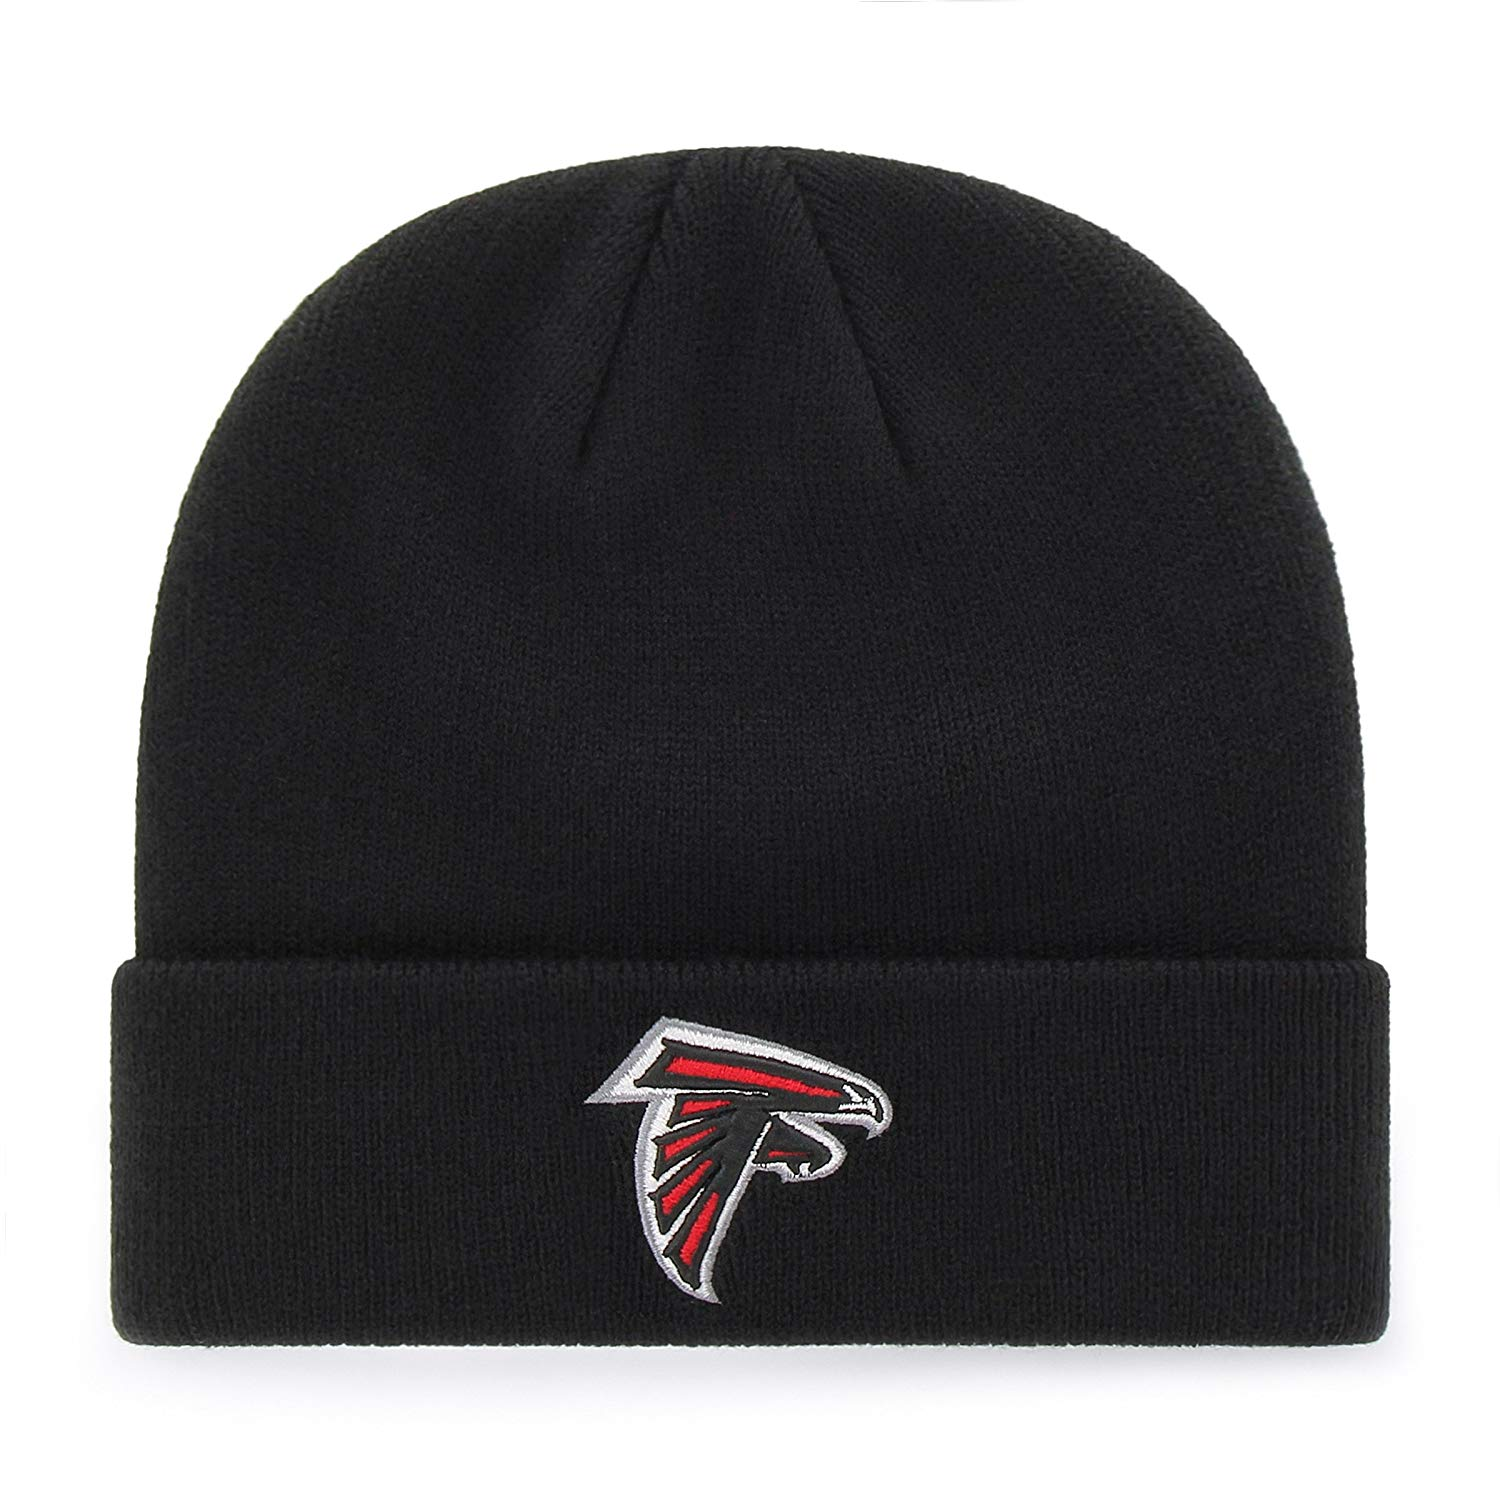 OTS NFL Adult Men's NFL Raised Cuff Knit Cap